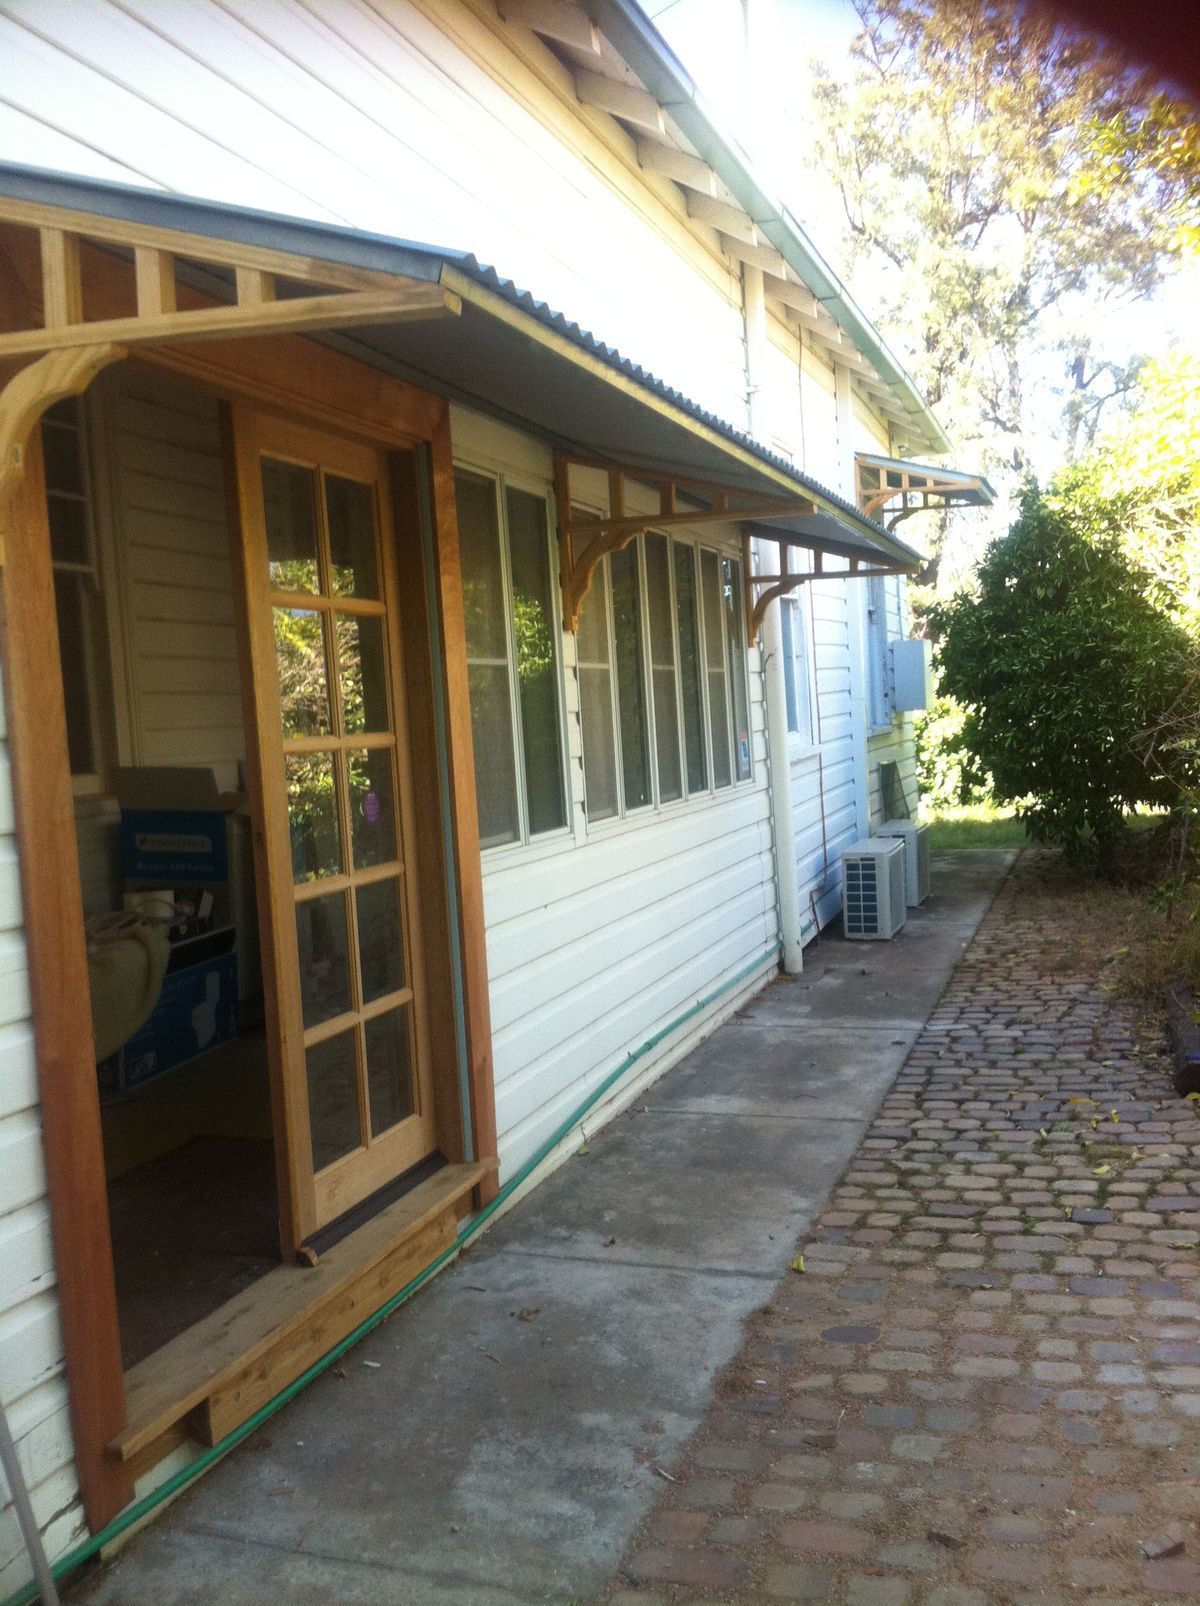 Innovative Retractable Awning Ideas Pictures Design For Your Summer Diy Awning Awning Over Door Door Awnings